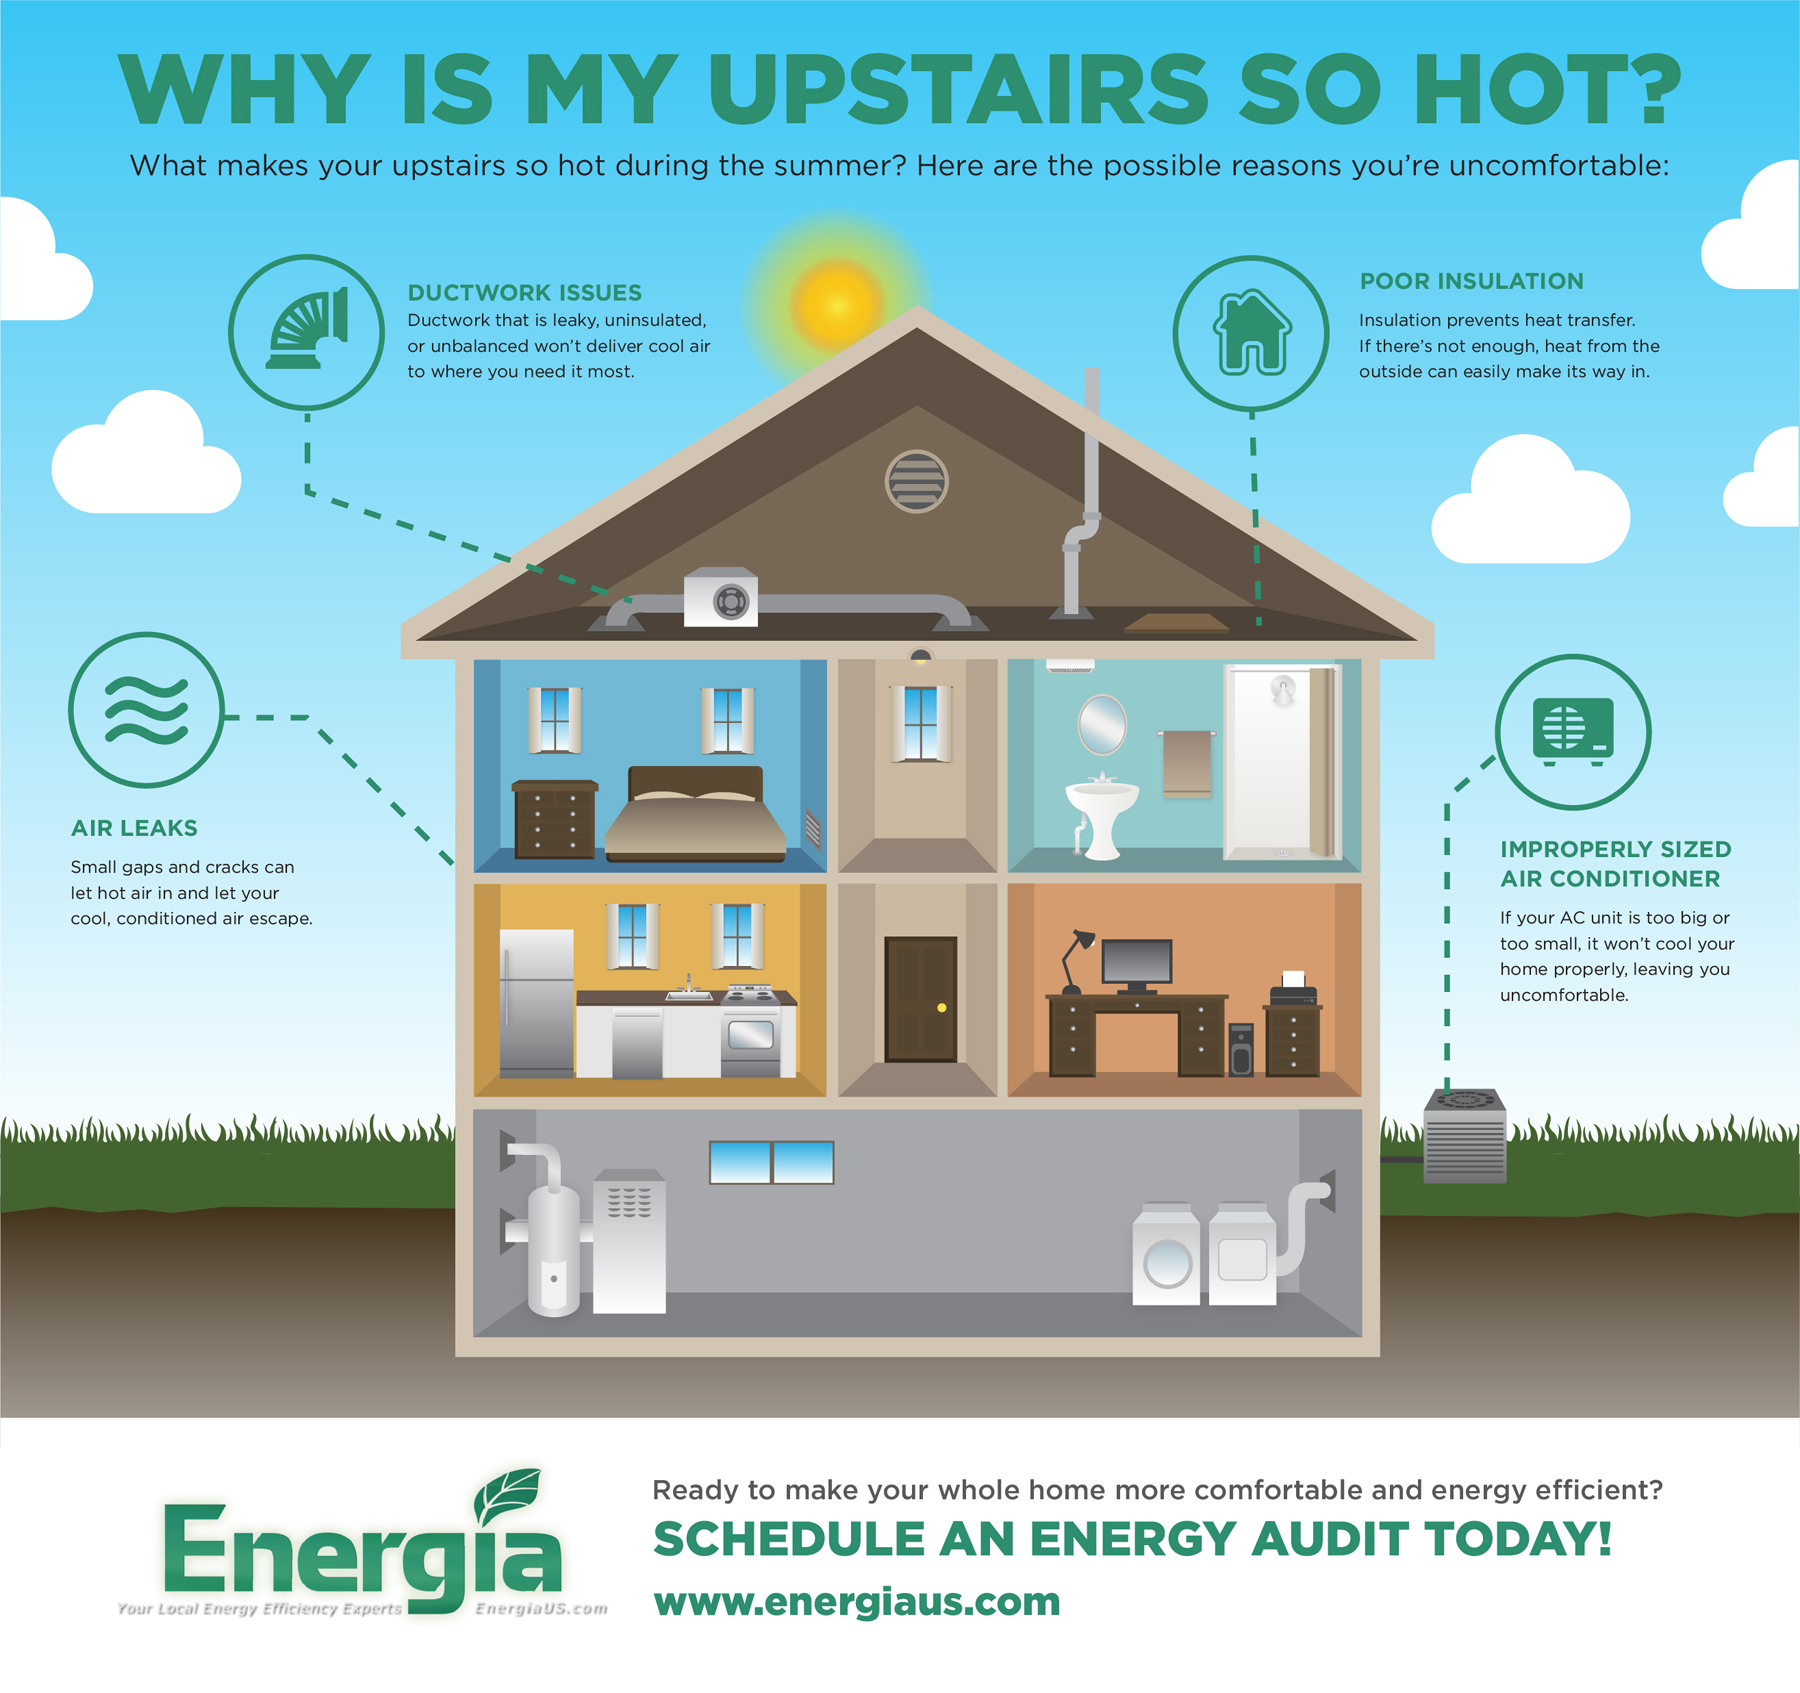 Cool down your upstairs this summer. Call (413) 322-3111 or  contact us  to schedule your home consultation today!